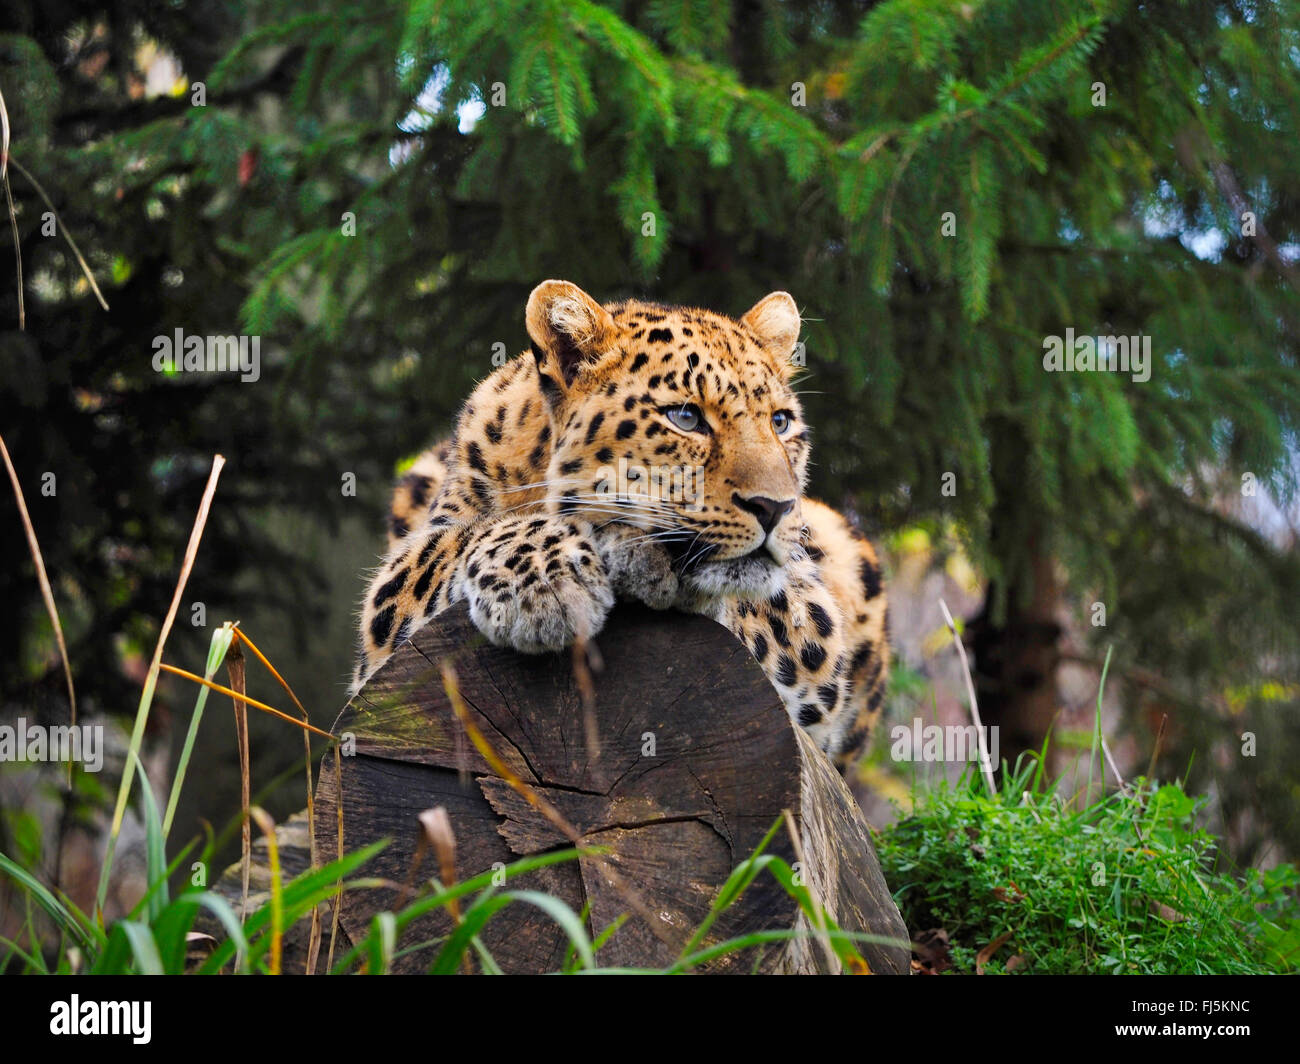 Amur leopard (Panthera pardus orientalis), lying on a tree trunk - Stock Image